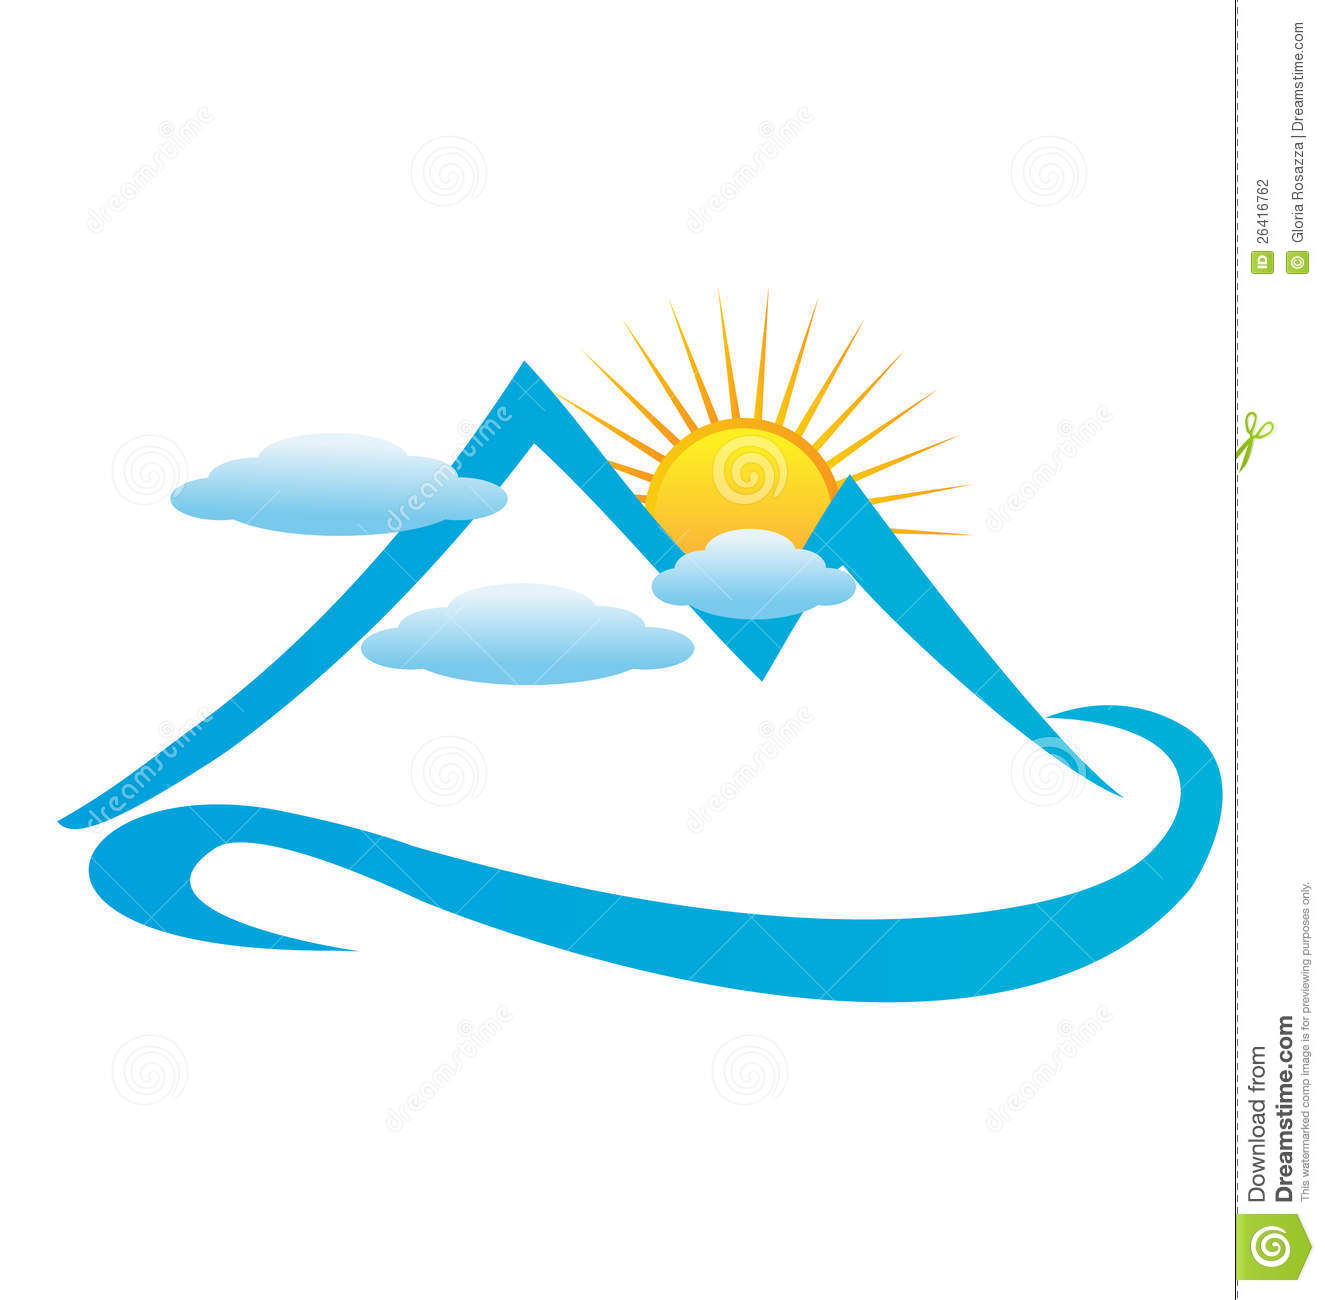 Cool computer logo with mountains clipart.